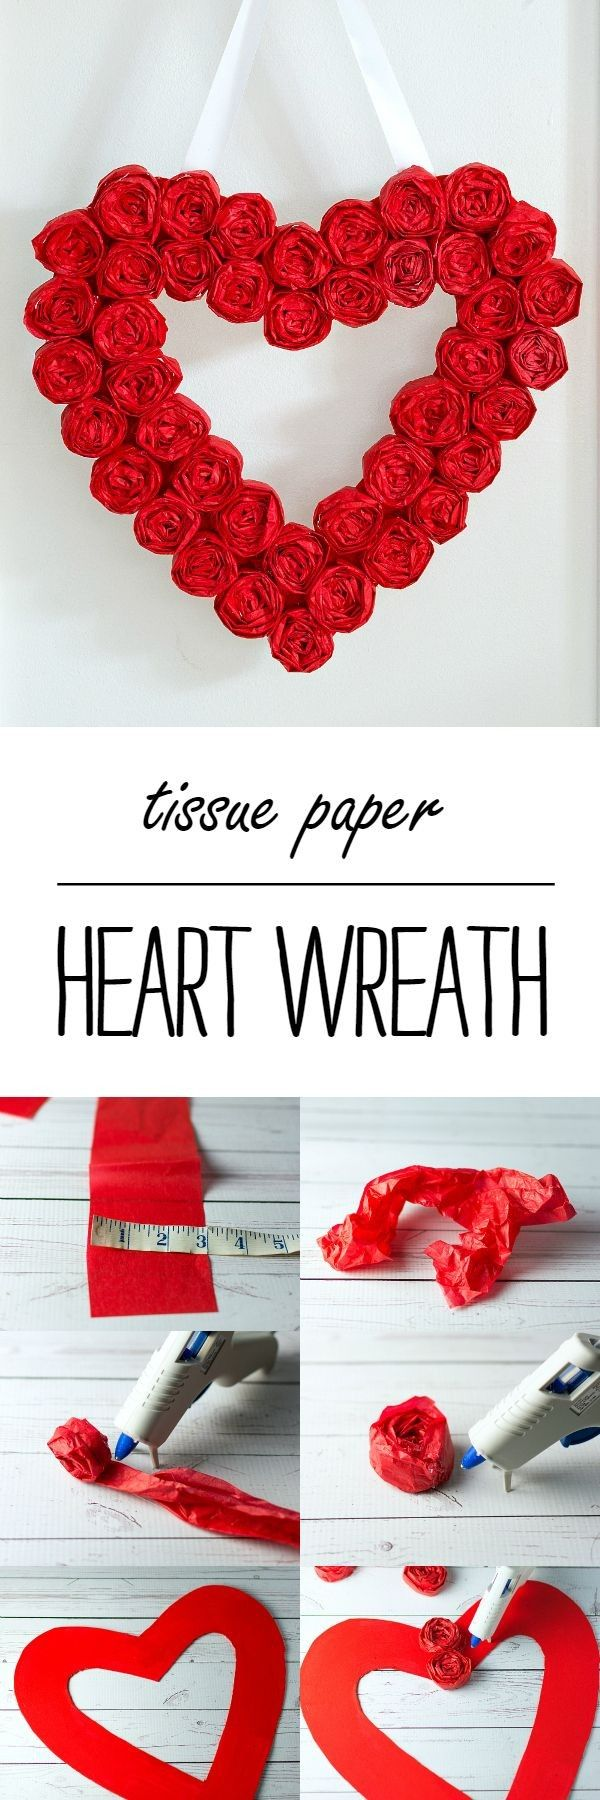 Beautiful Valentines Wreath Ideas Crafts To Make And Sell